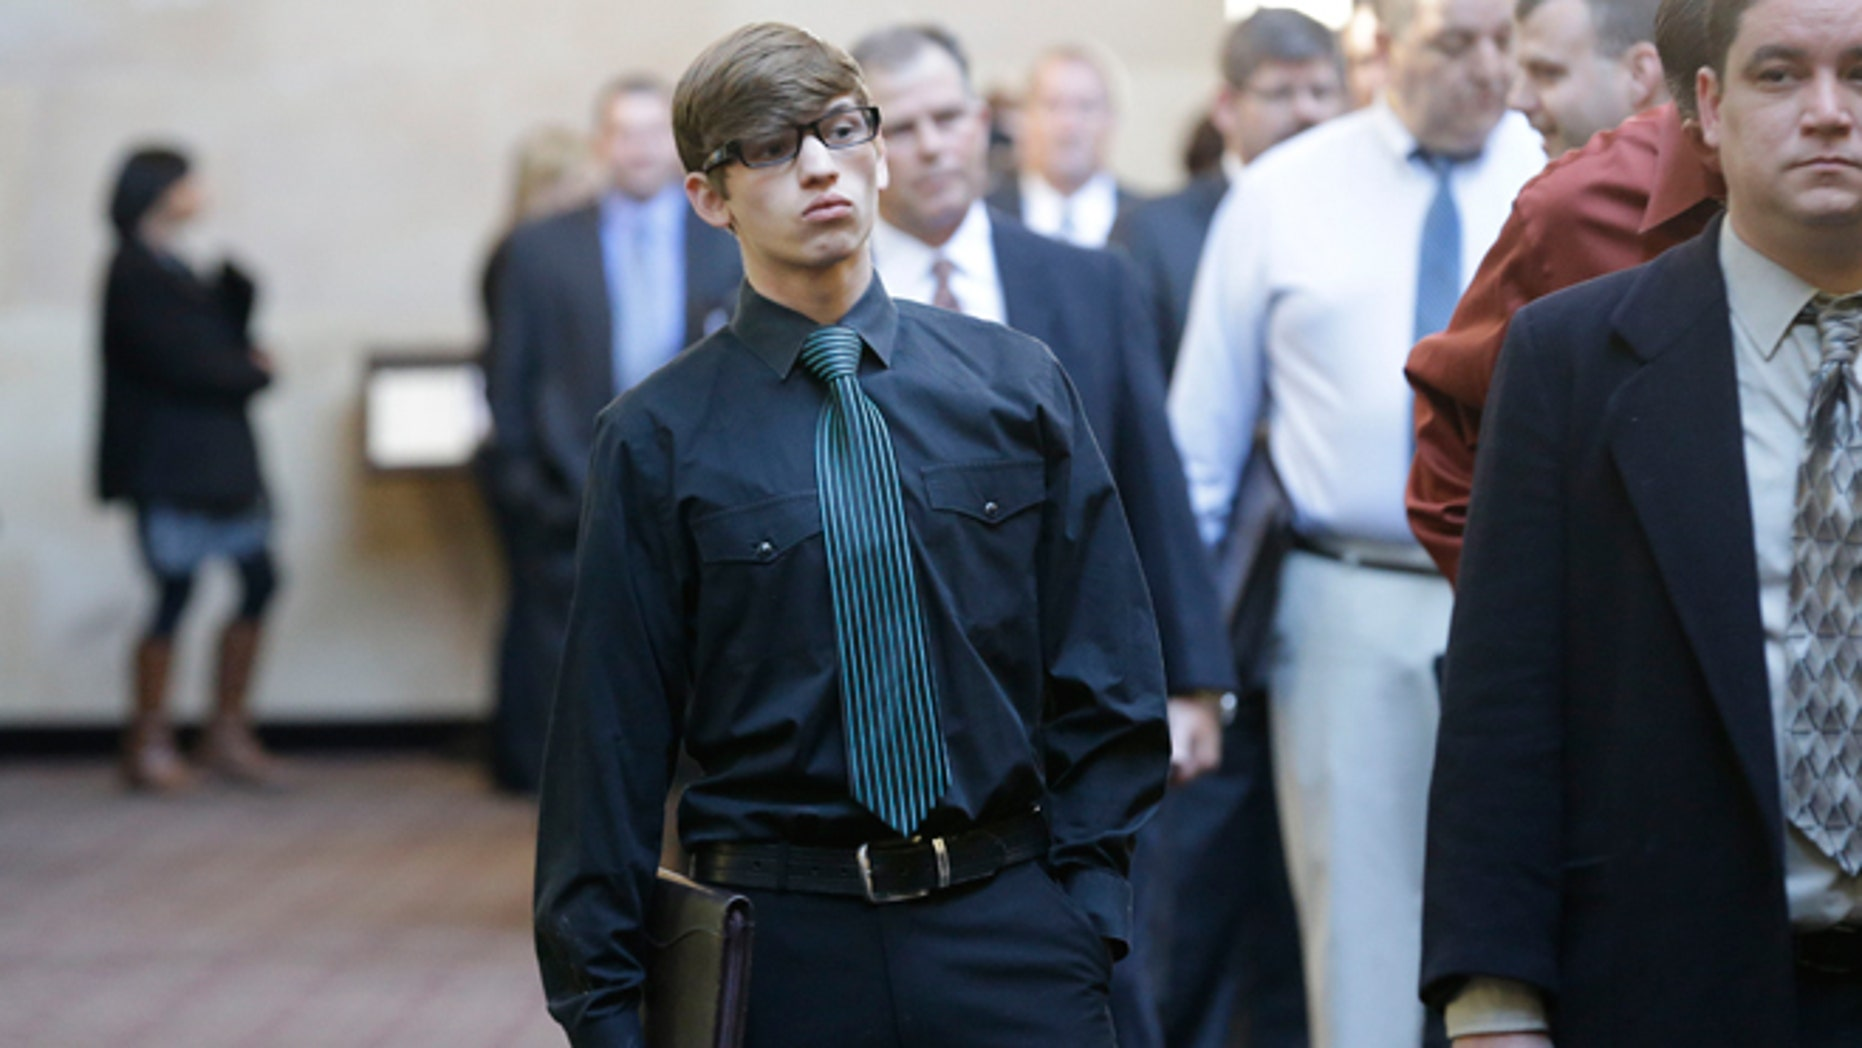 FILE -- Jan. 22, 2014: Austin Moore, 18, lines up with other job seekers during a career fair at a hotel in Dallas.